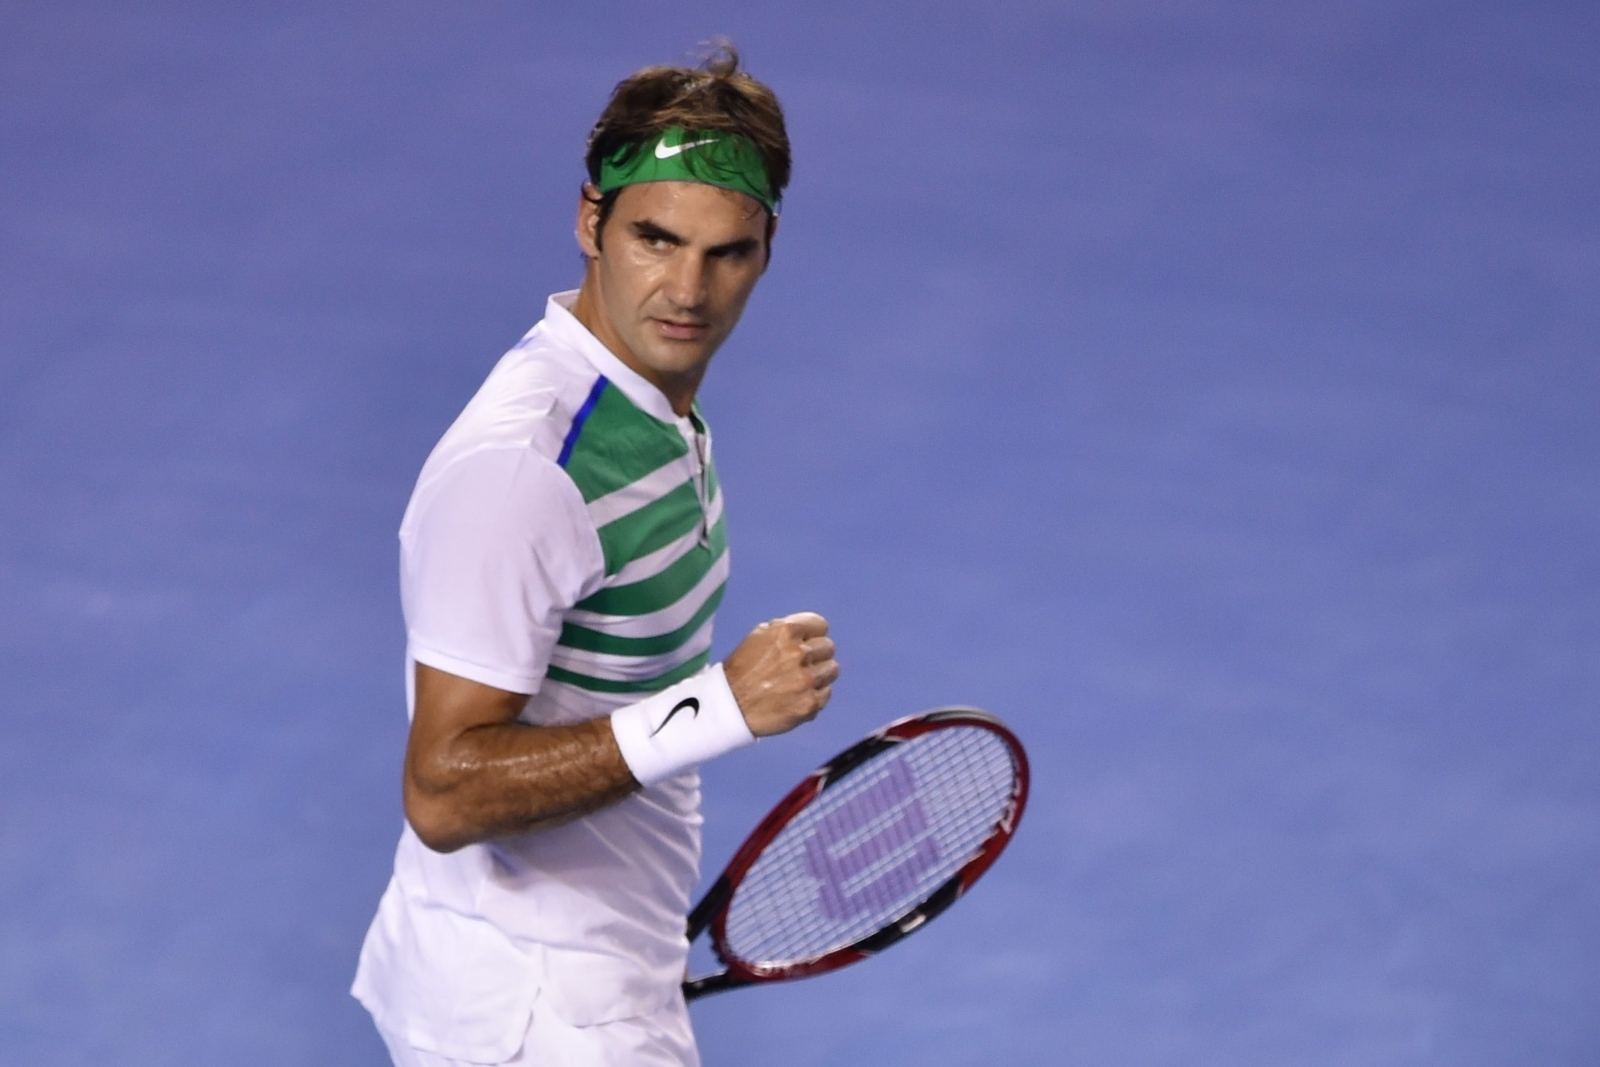 Federer dreaming of No 1 this week